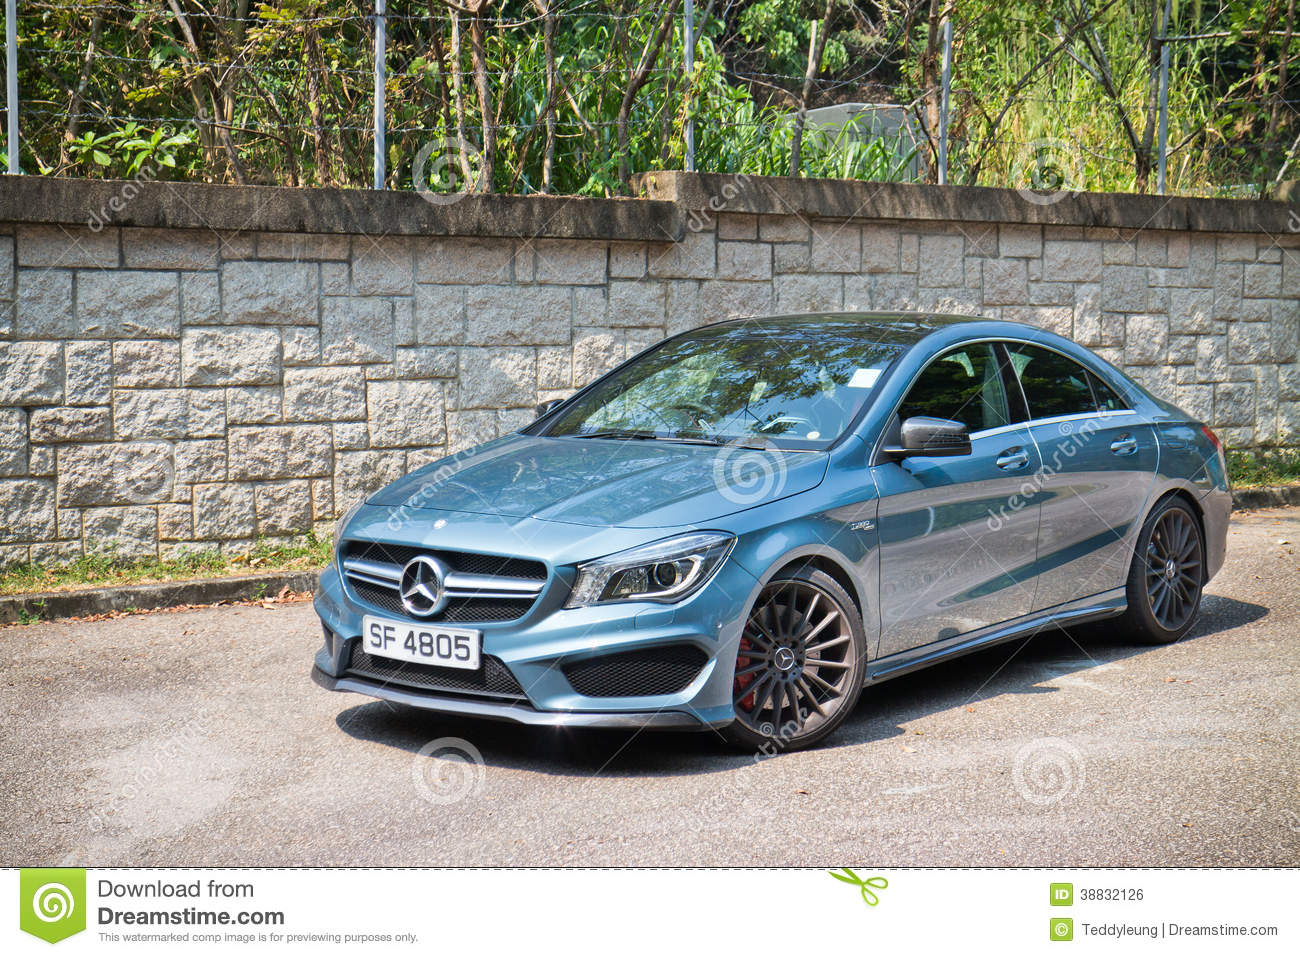 All Types 2013 mercedes cla : Mercedes-Benz CLA 45 AMG 4MATIC 2013 Model Editorial Photo - Image ...